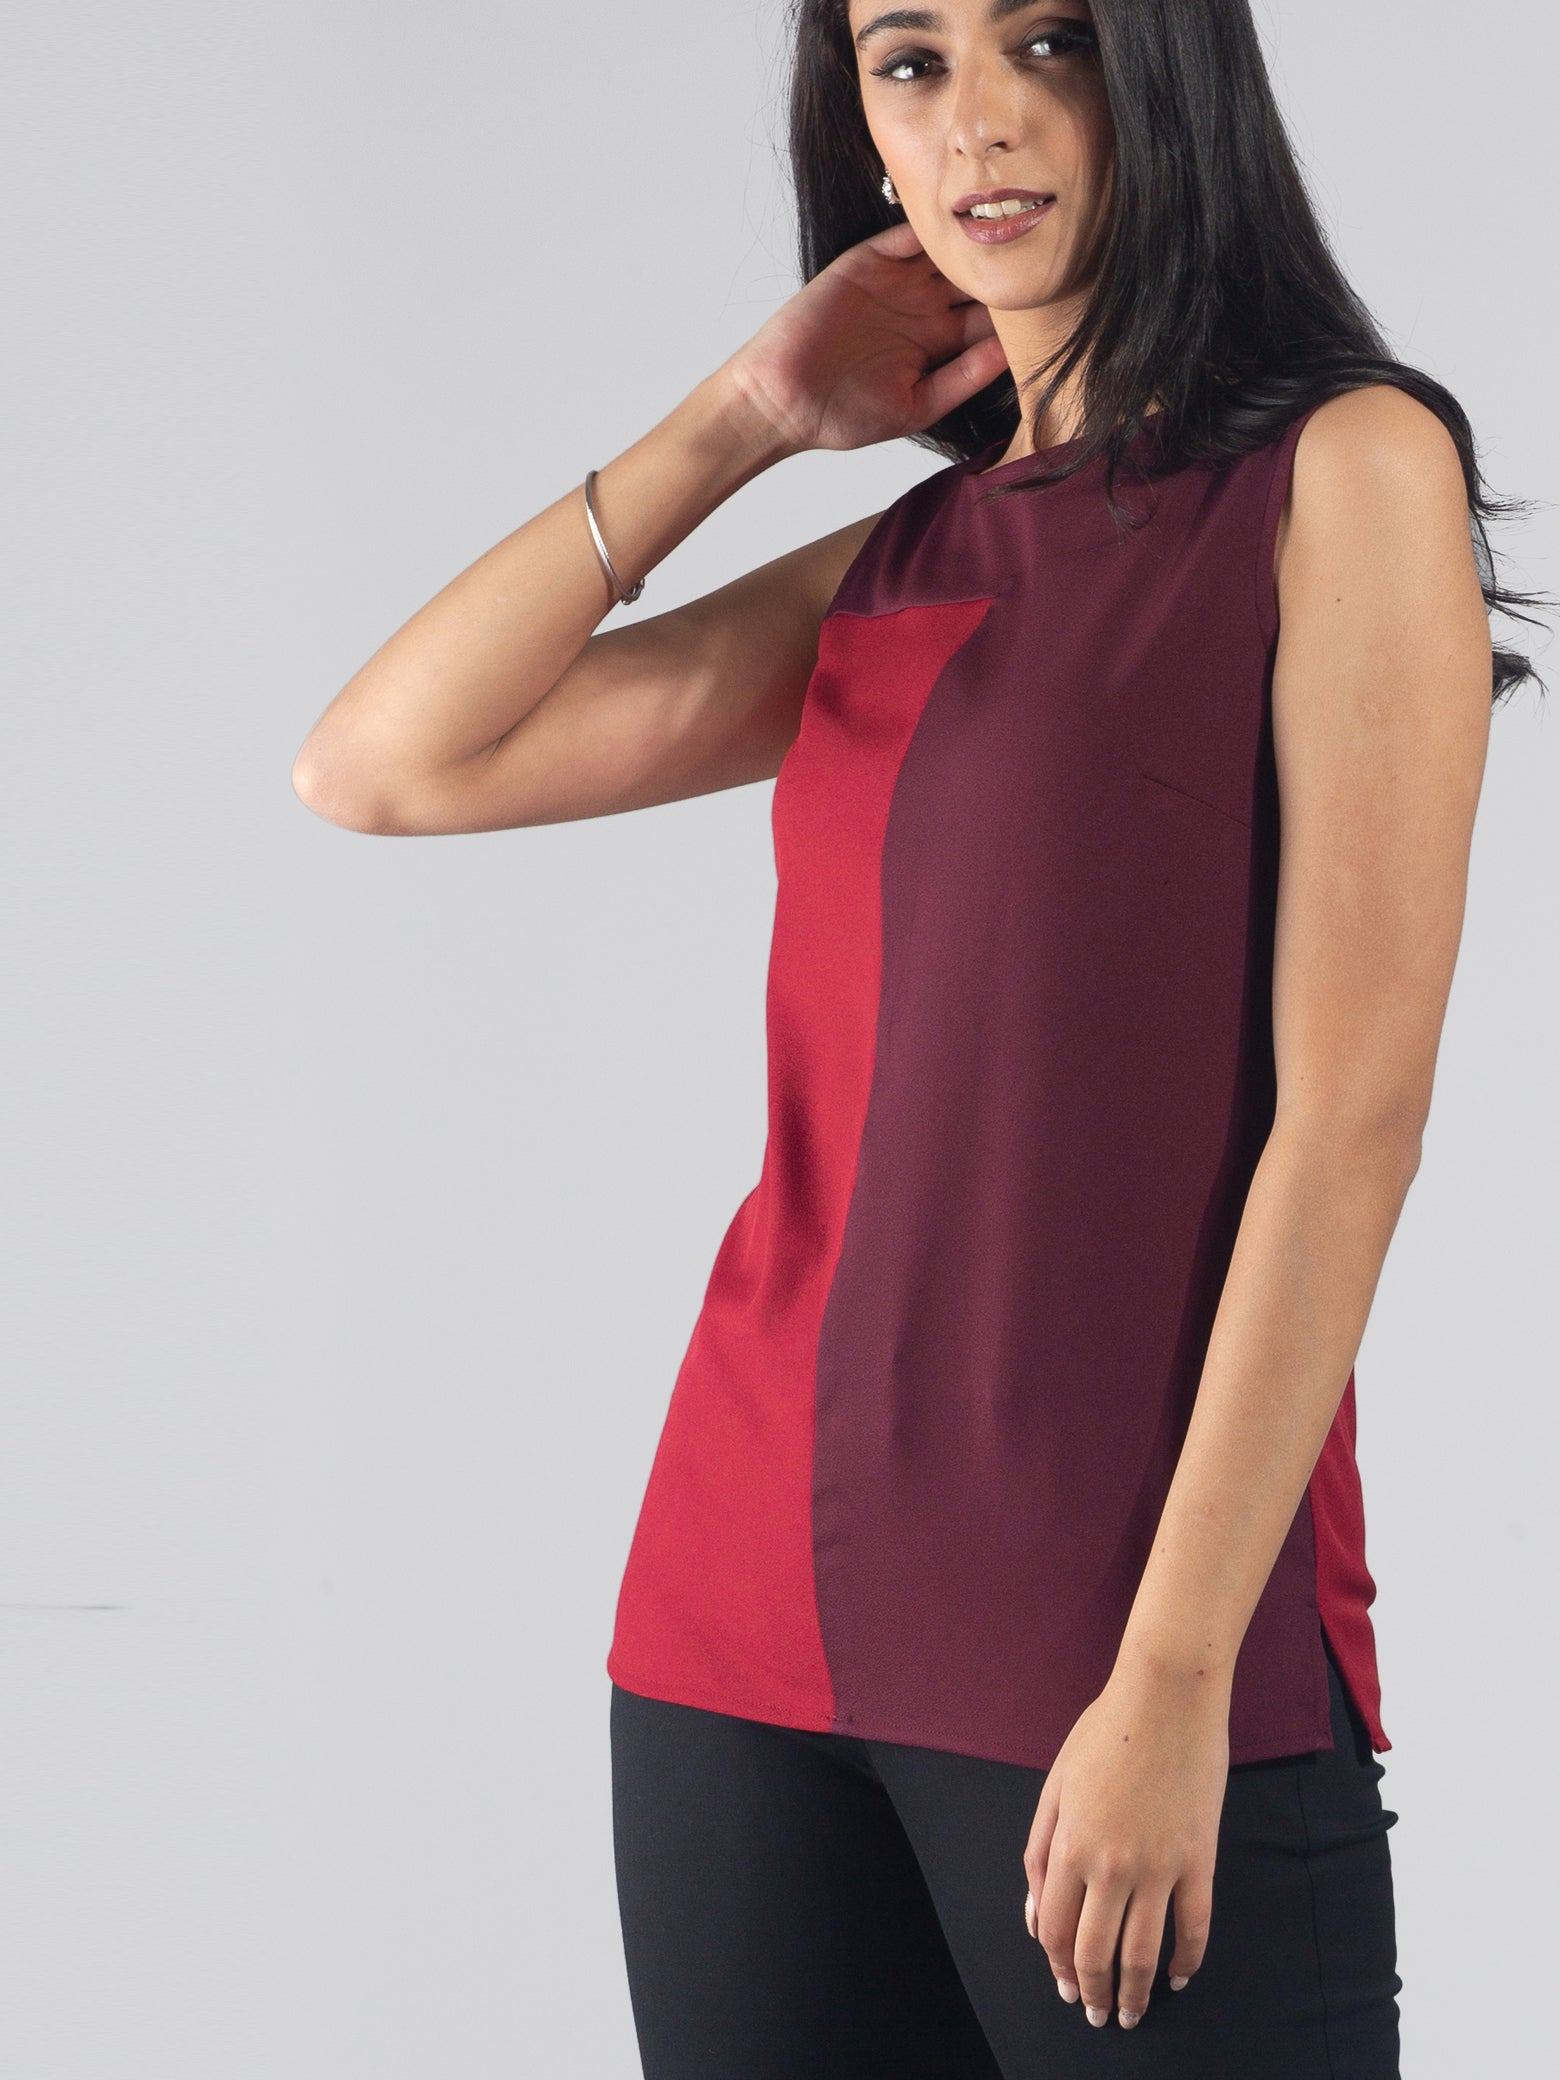 Colour Block Top - Maroon & Carmine Red